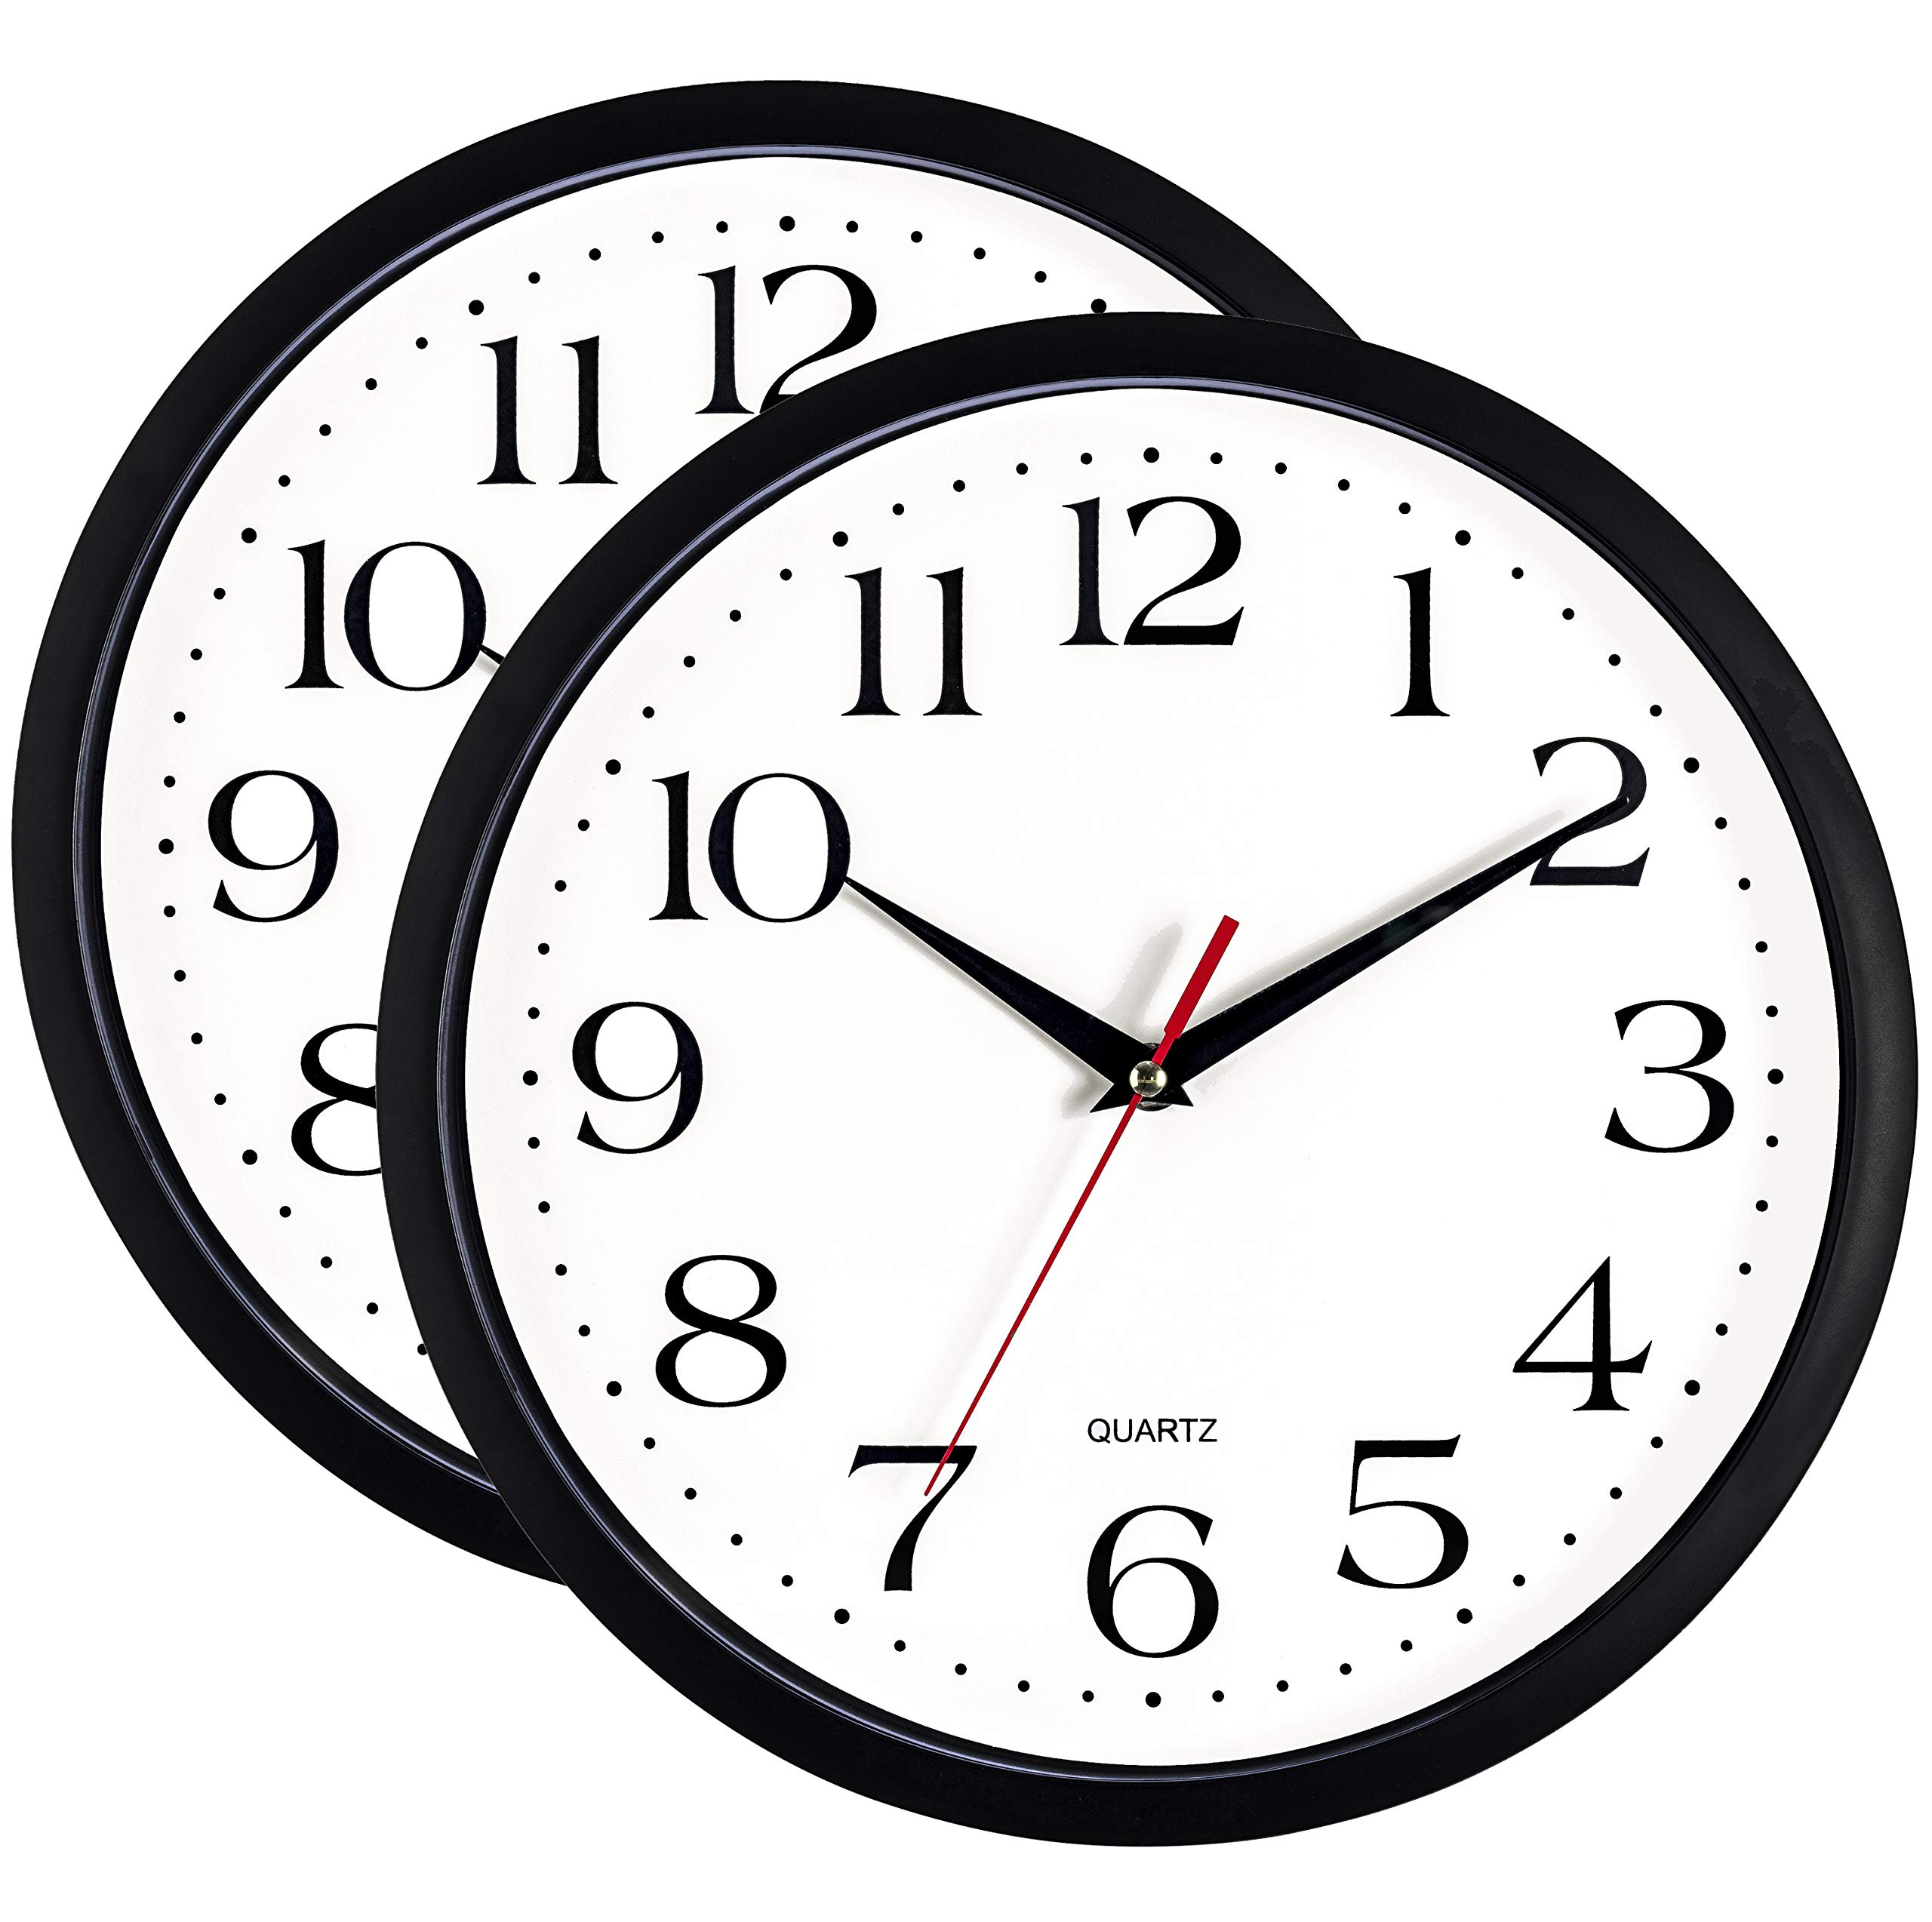 Bernhard Products Black Wall Clocks, 2 Pack Silent Non Ticking - 12 Inch Quality Quartz Battery Operated Round Easy to Read Home/Office/Classroom/Business/Kitchen/School Clock